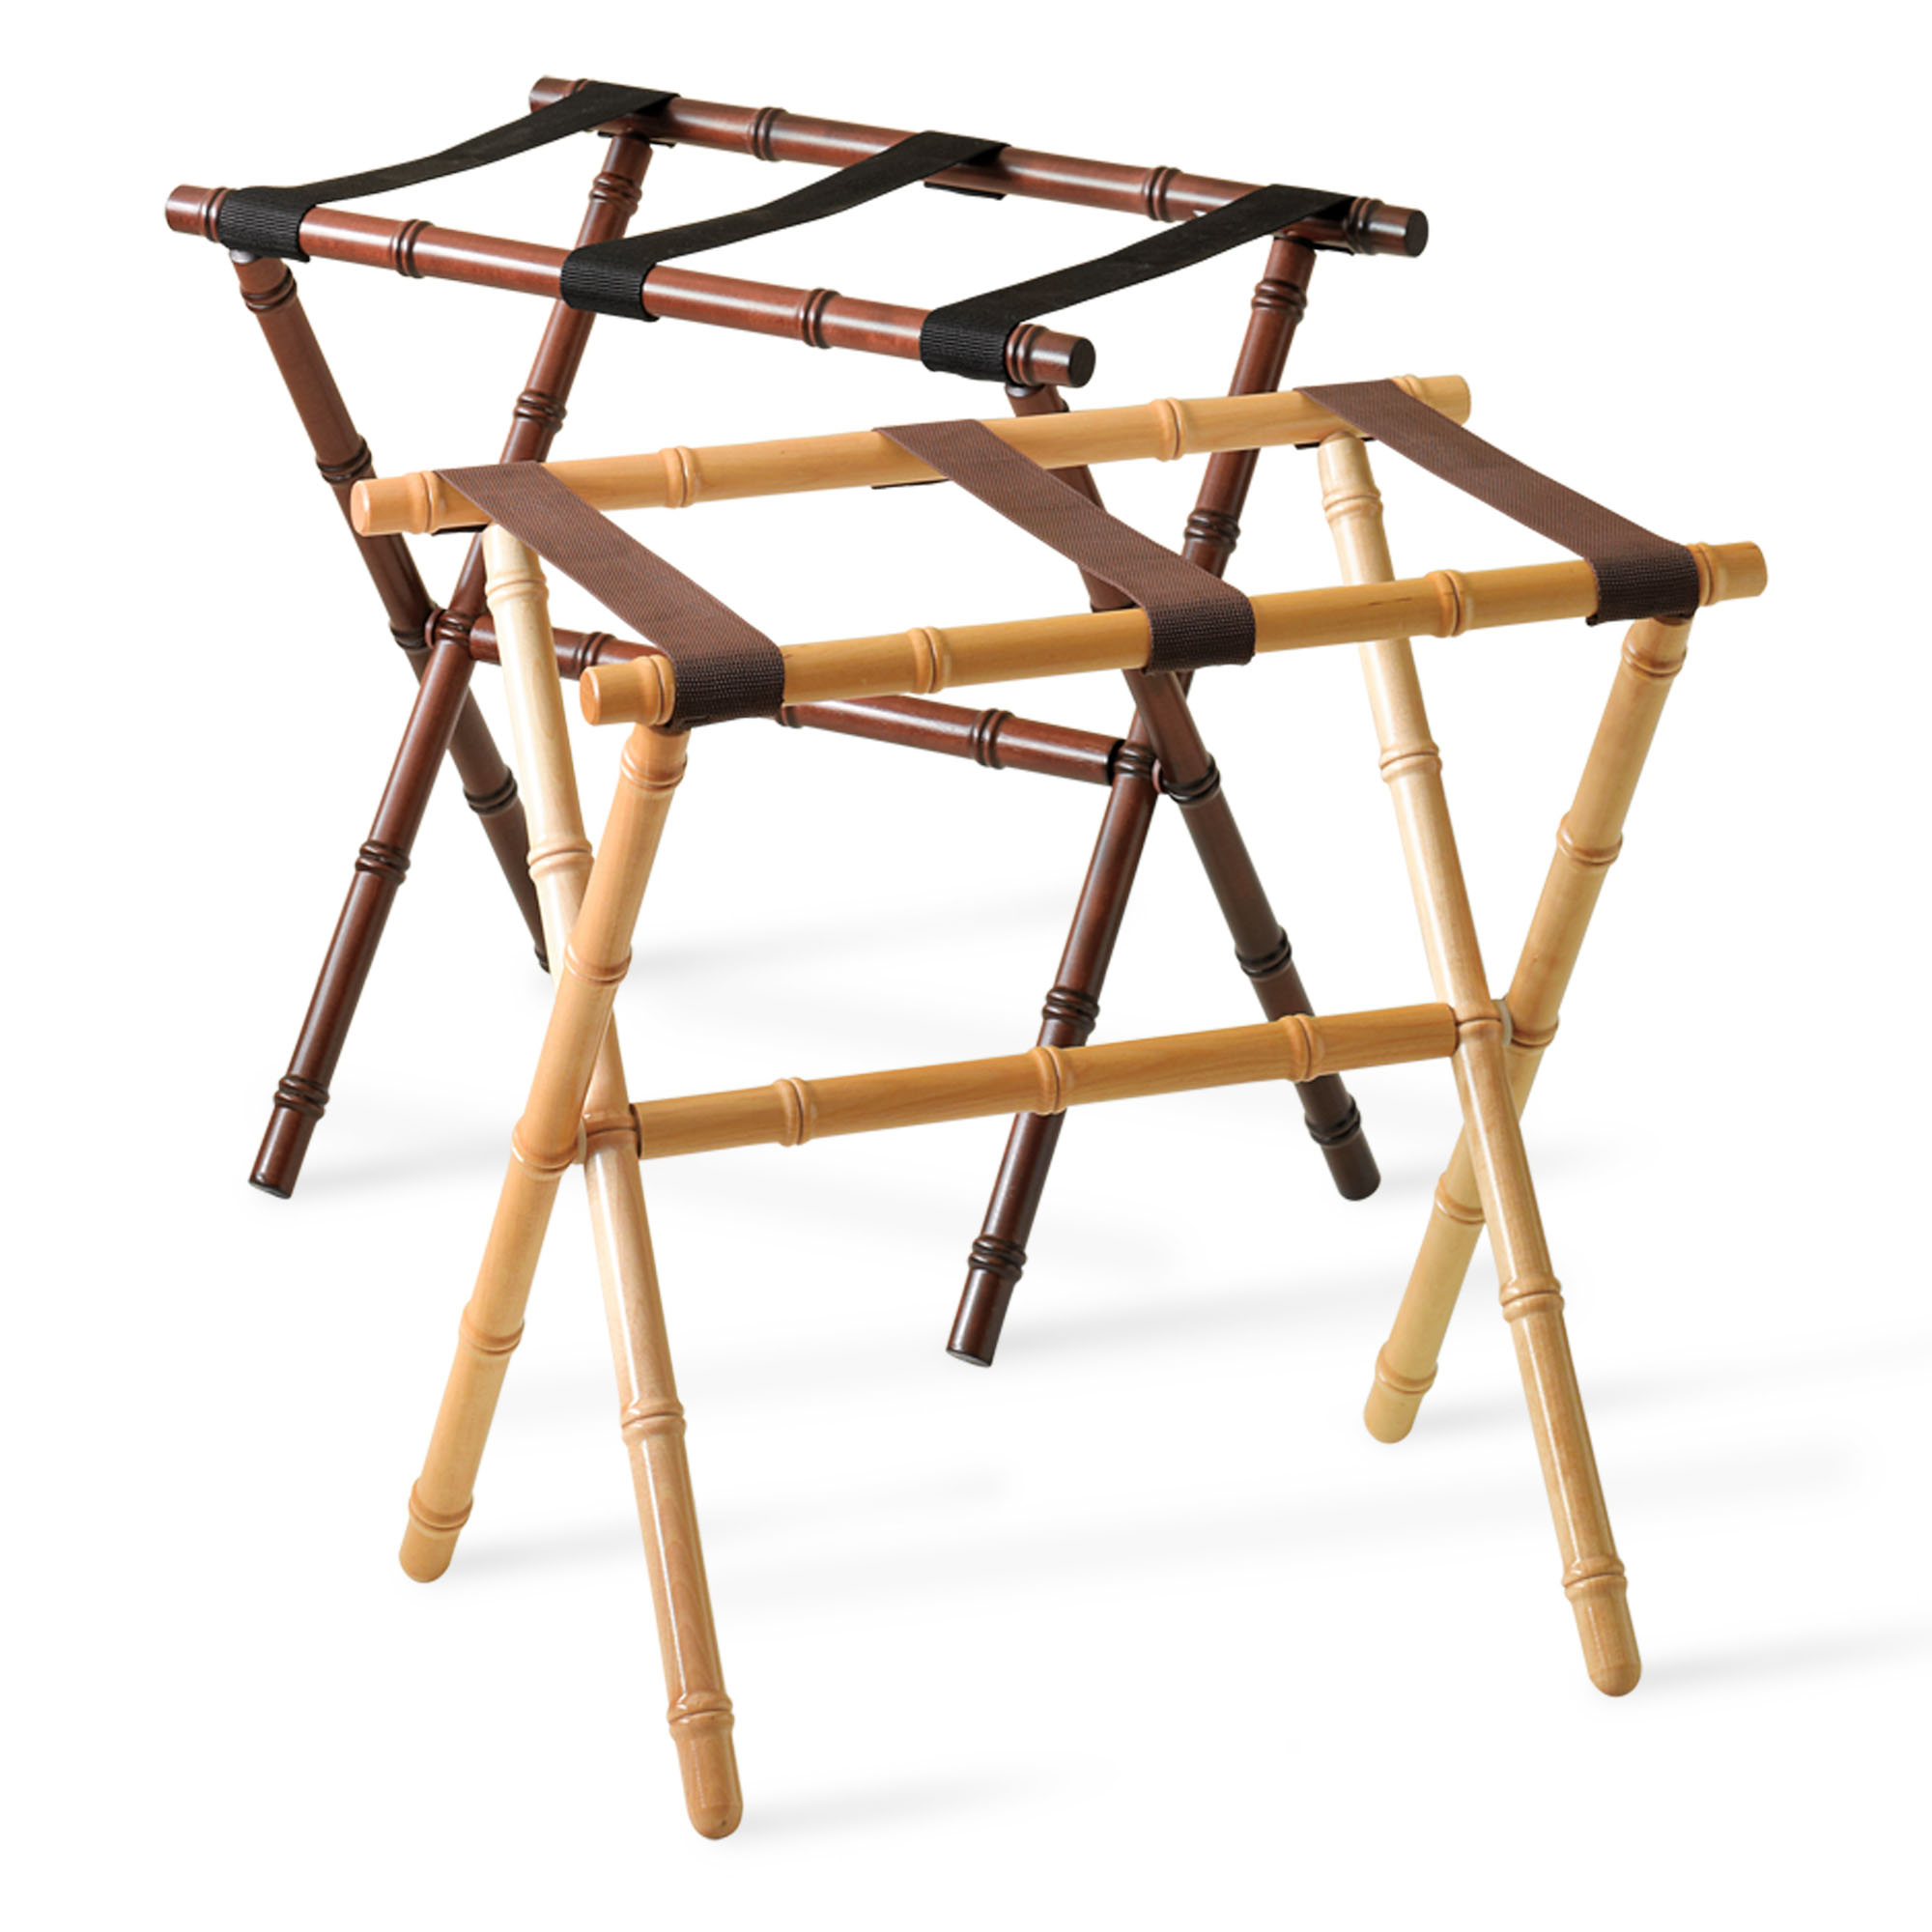 Carved Bamboo Luggage Rack